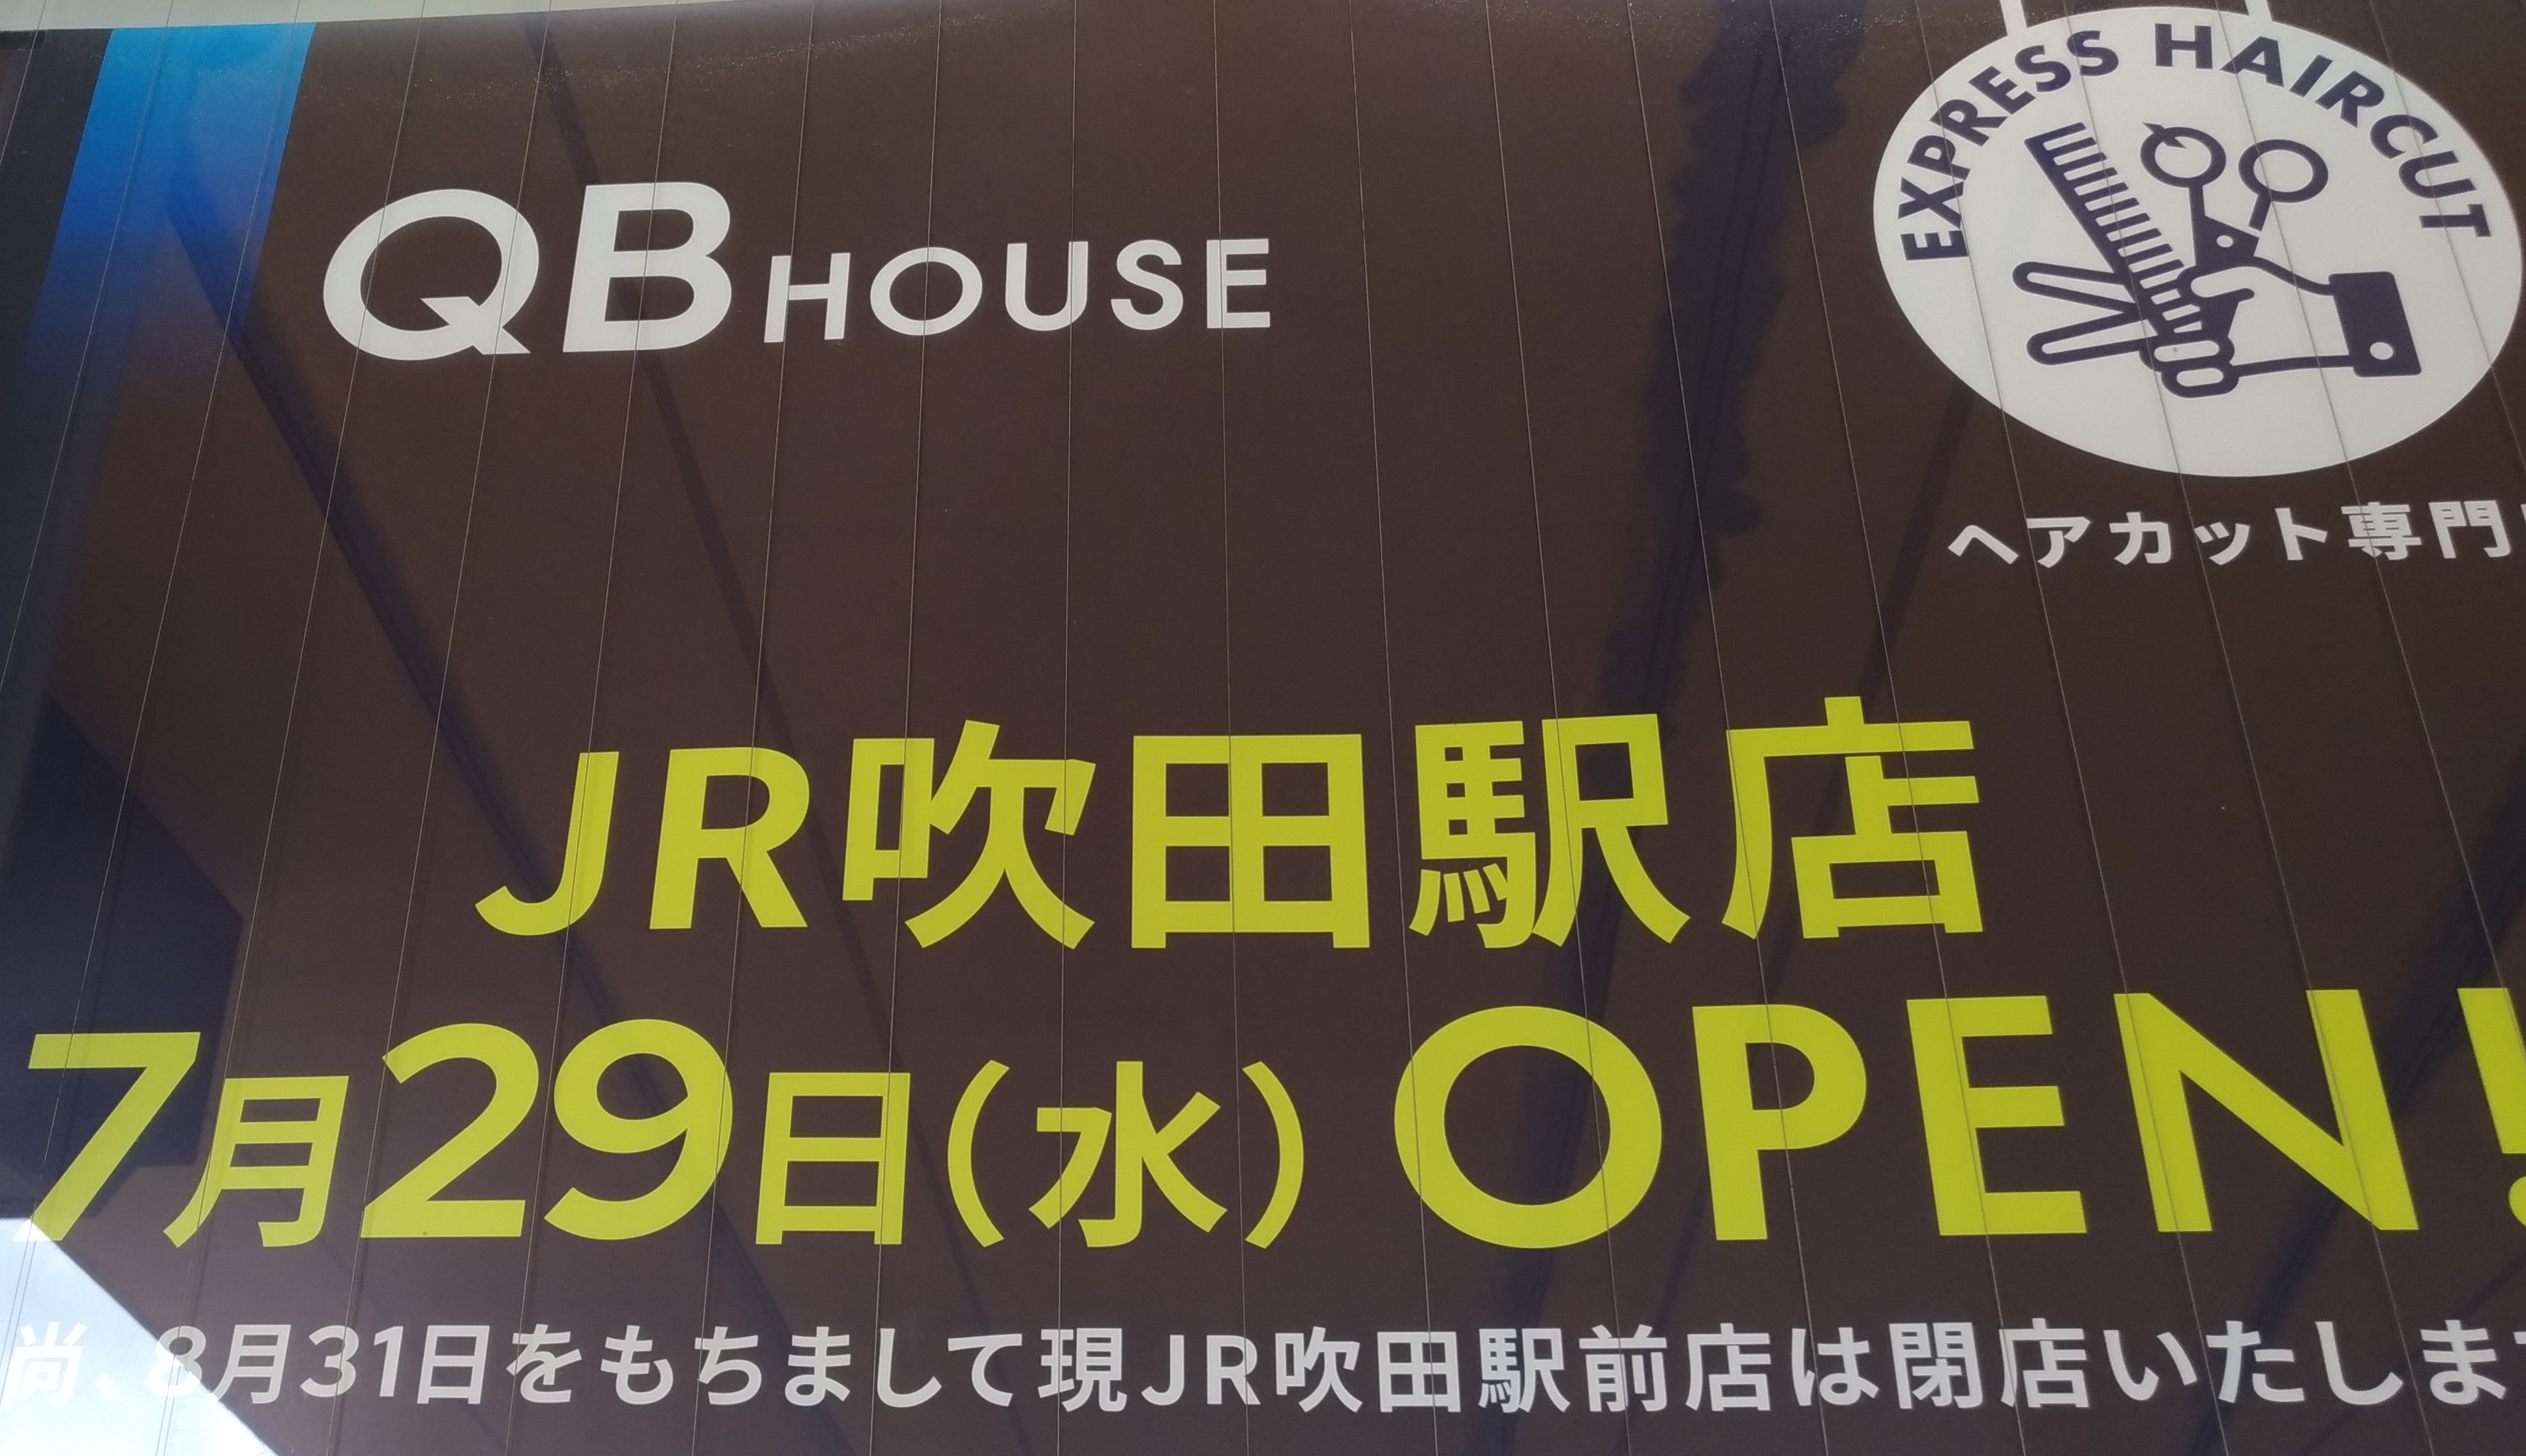 QB_house_JR_suita_open_.jpg